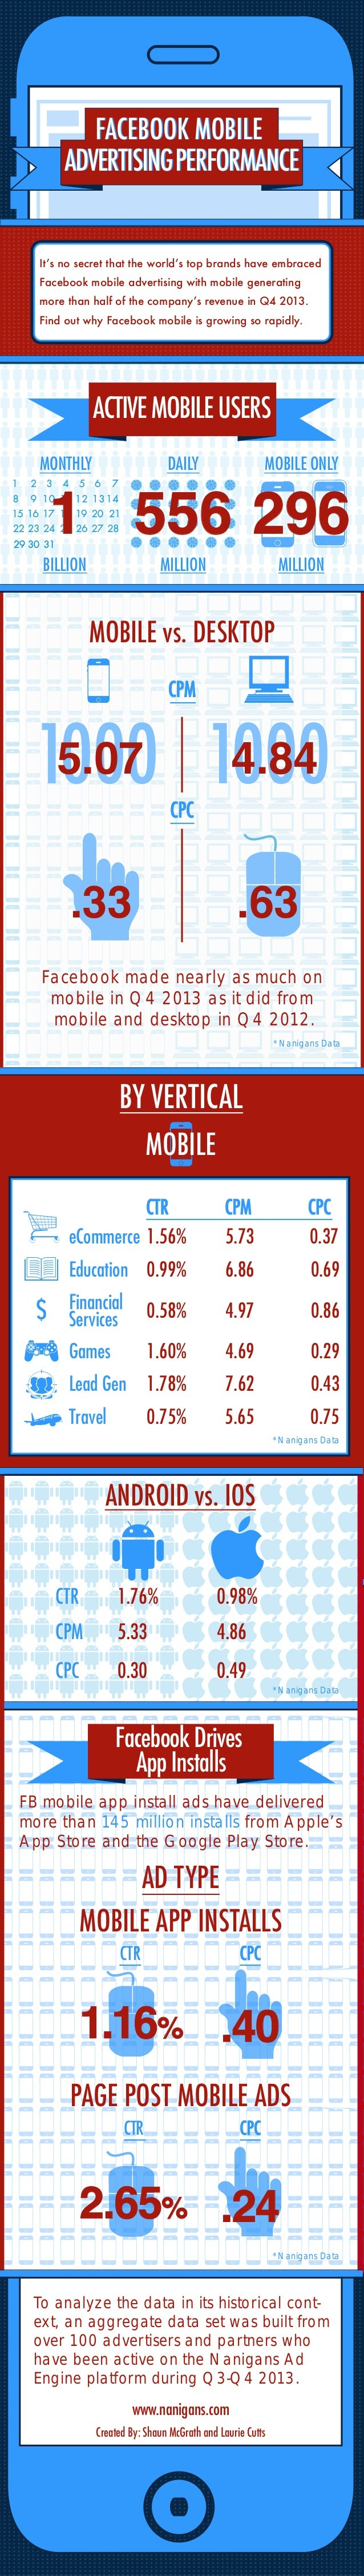 29 30 31 1 MONTHLY BILLION DAILY MOBILE ONLY MILLION MILLION 556 296 ACTIVEMOBILEUSERS Facebook made nearly as much on mob...